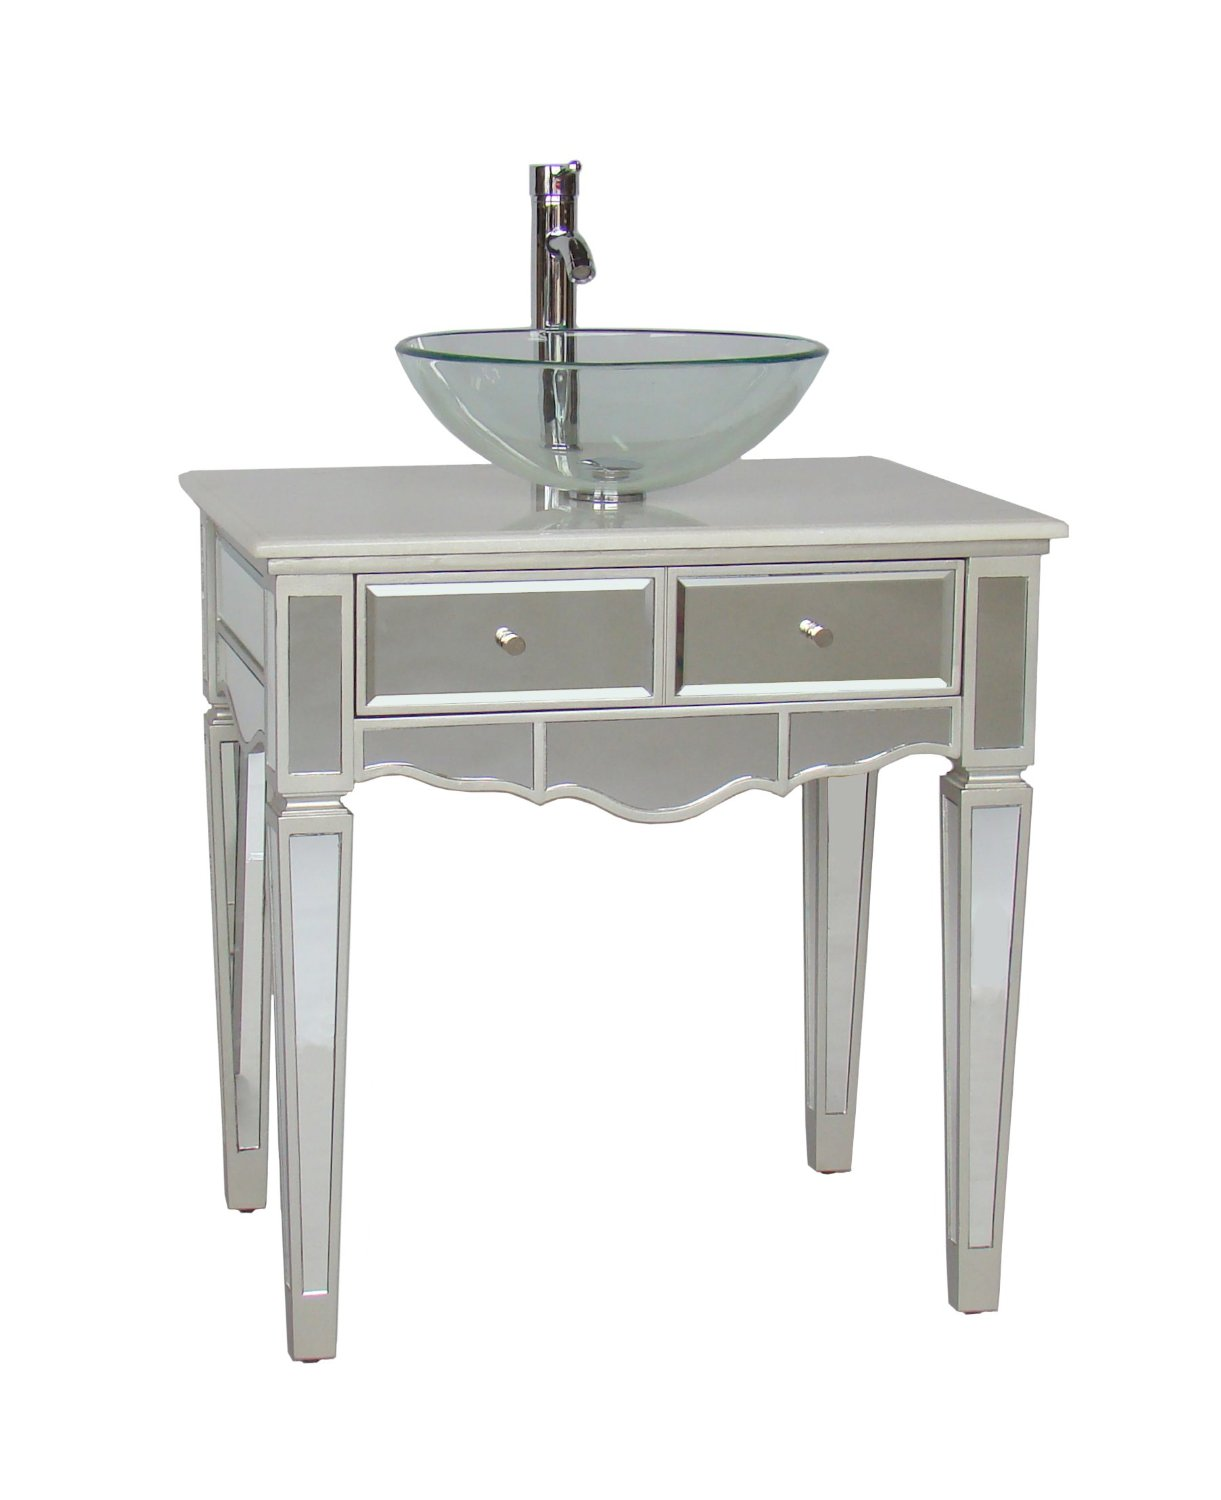 Adelina 30 Inch Mirrored Vessel Sink Bathroom Vanity White Marble Counter Top